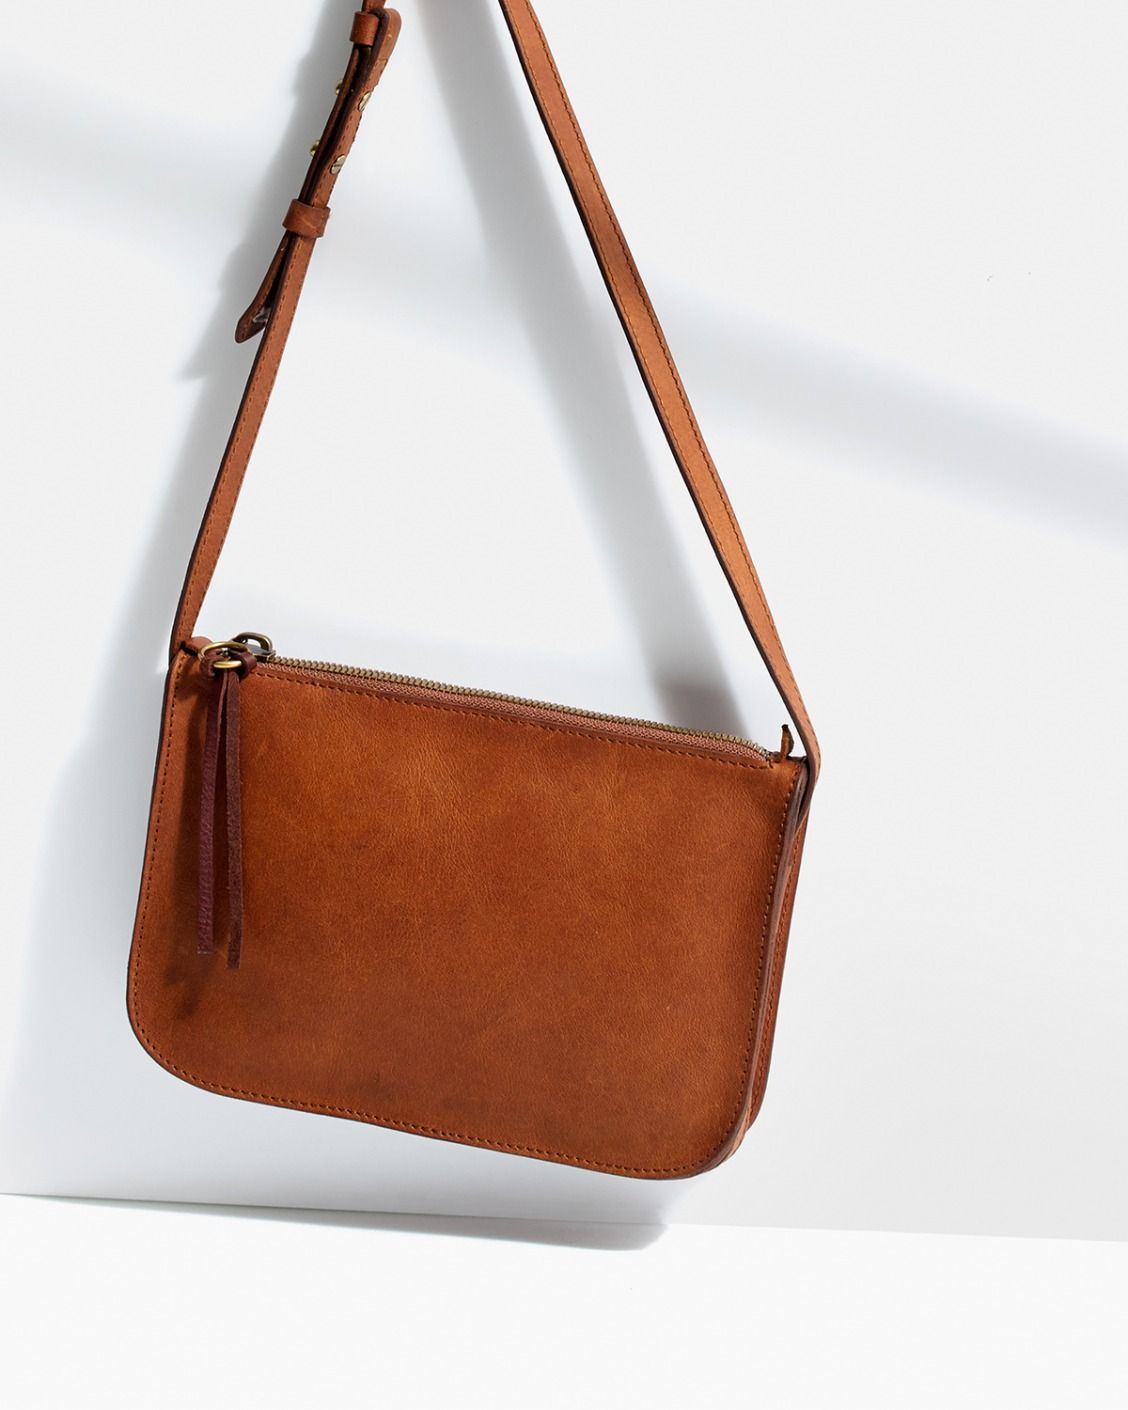 ff789f7e86a7 madewell simple crossbody. get this + more in the one-stop accessories  shop.  totewell